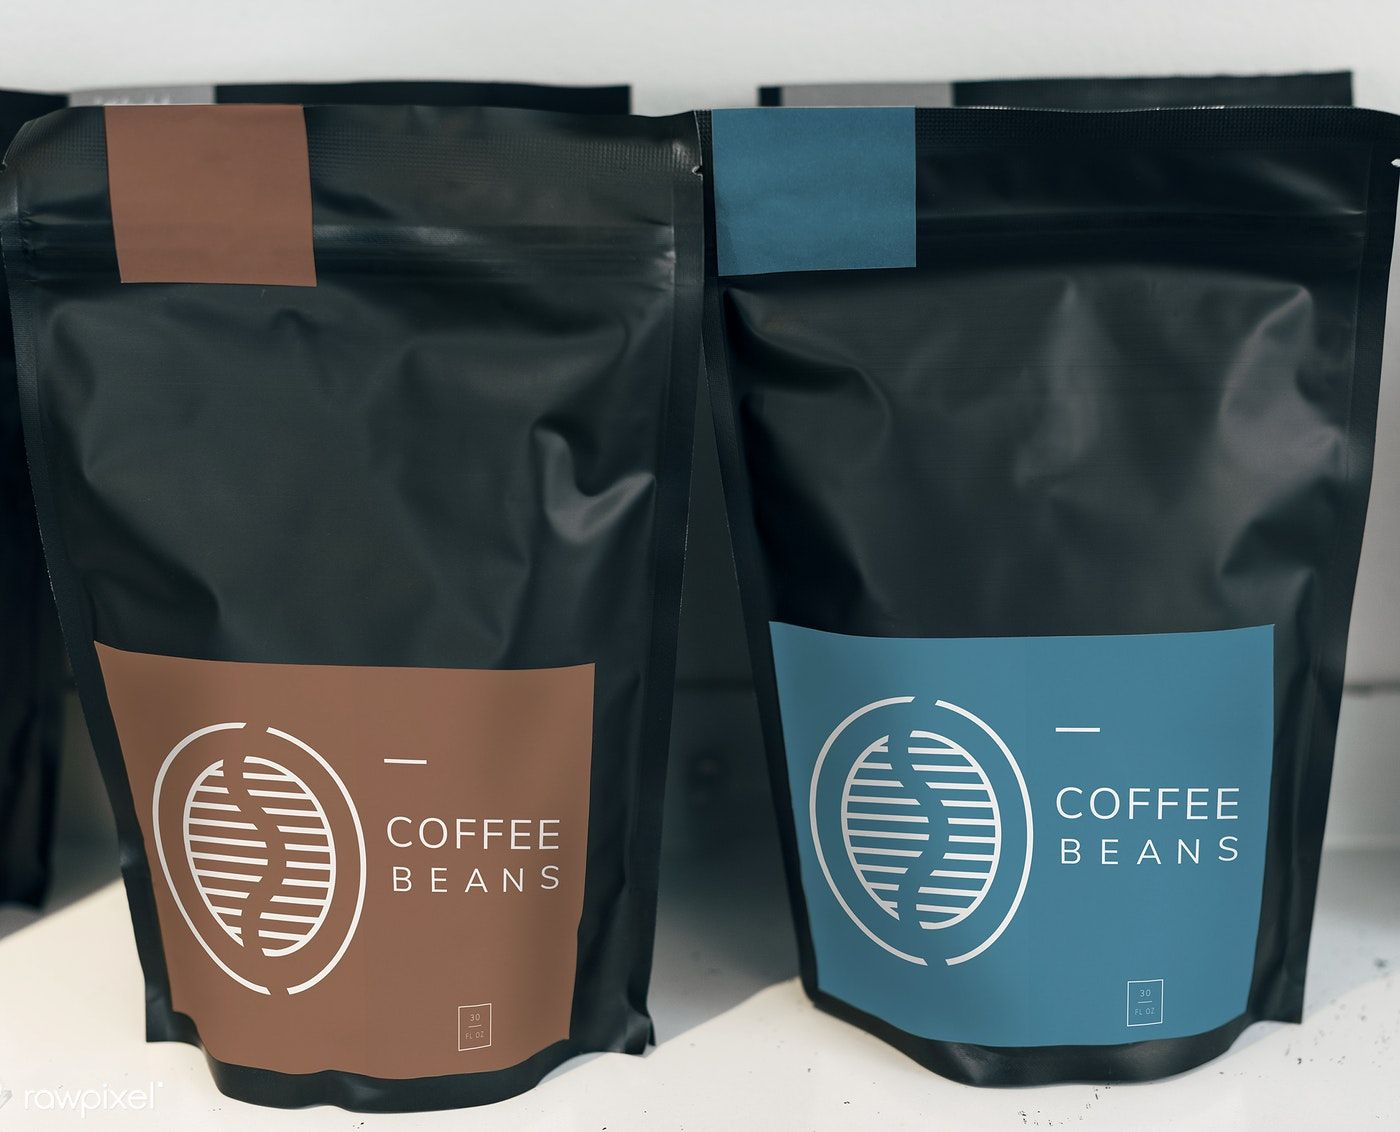 Coffee Bean Bag Mockup Design Free Image By Rawpixel Com Coffee Bean Bags Bag Mockup Coffee Beans